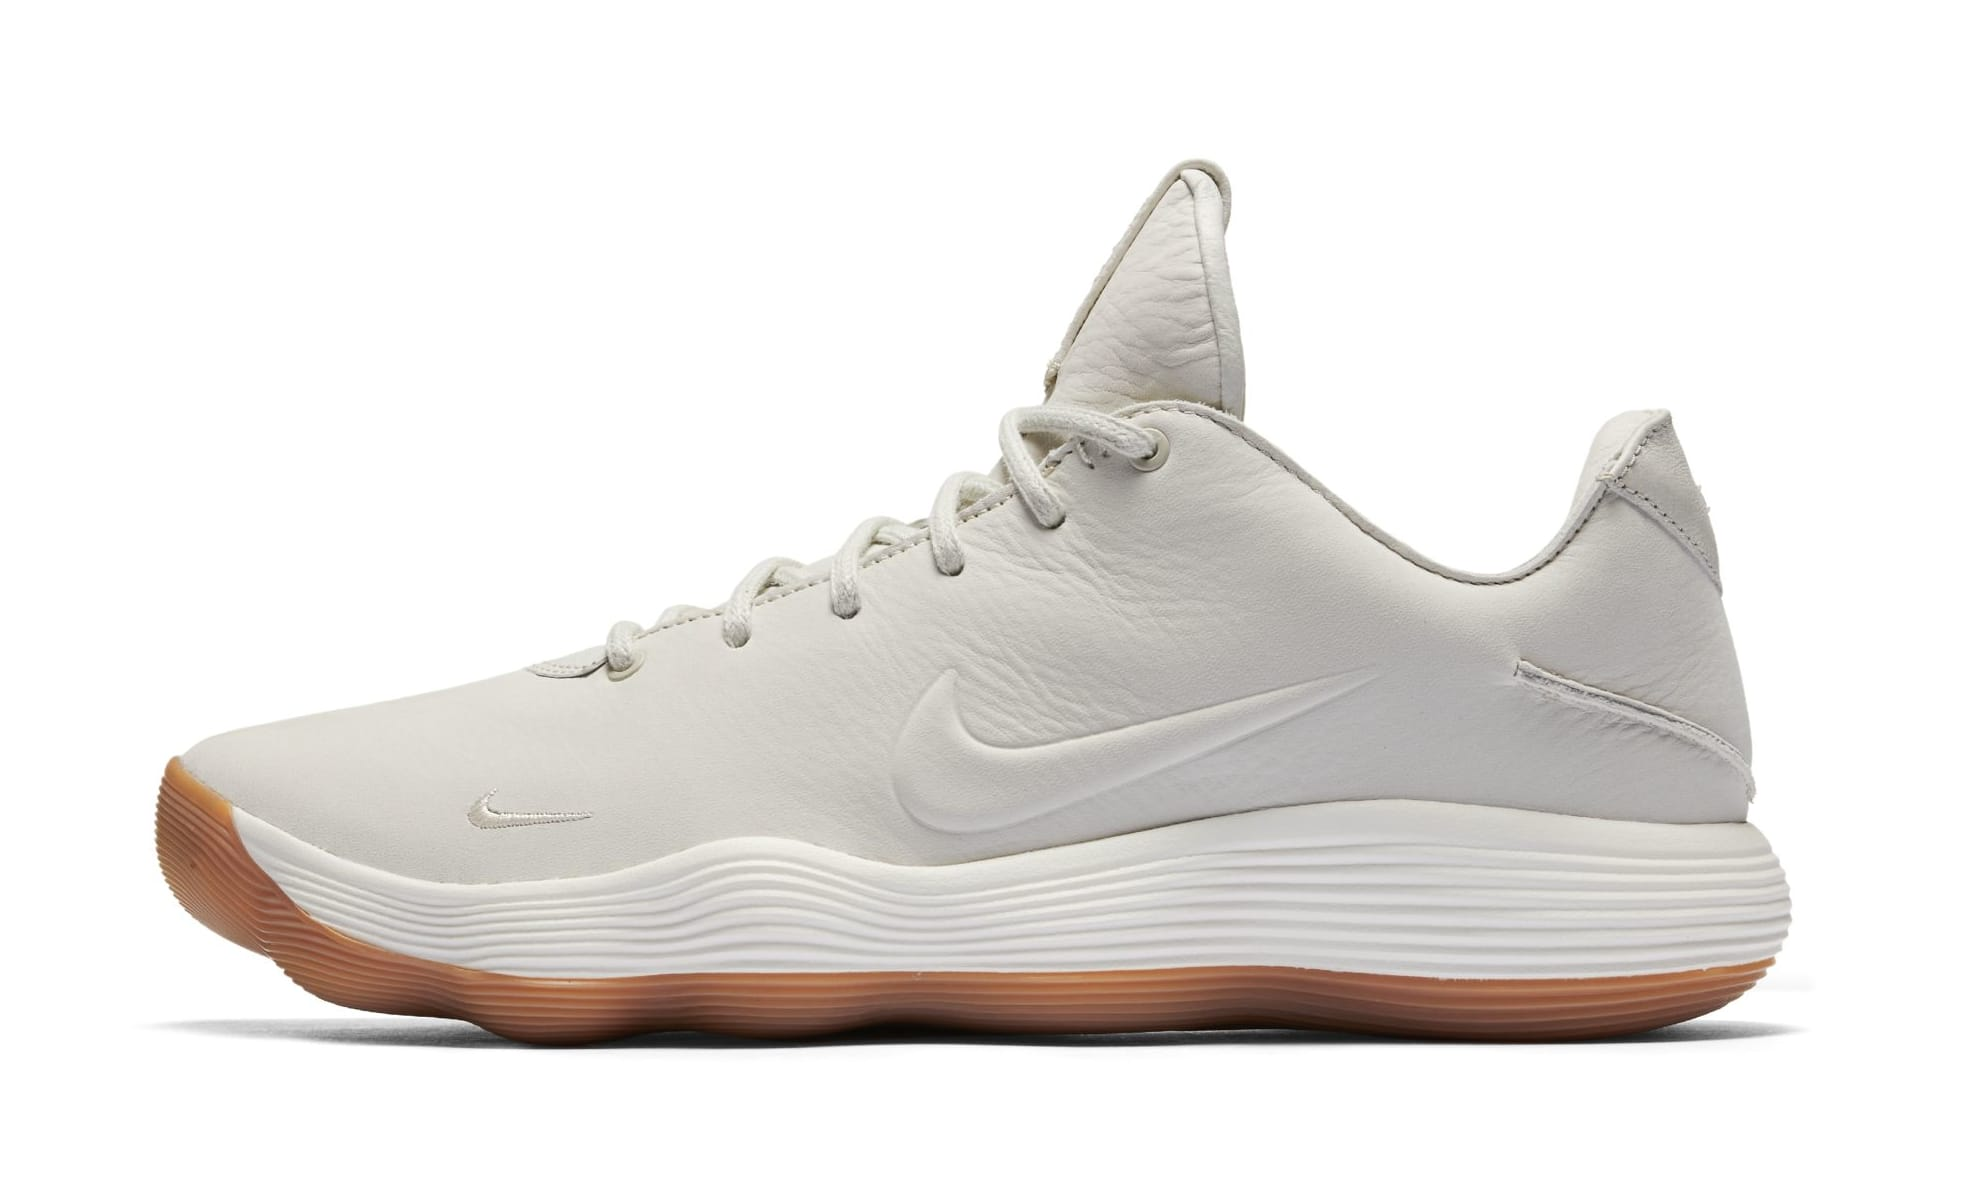 Nike Hyperdunk 2017 Low Lifestyle White (Lateral)